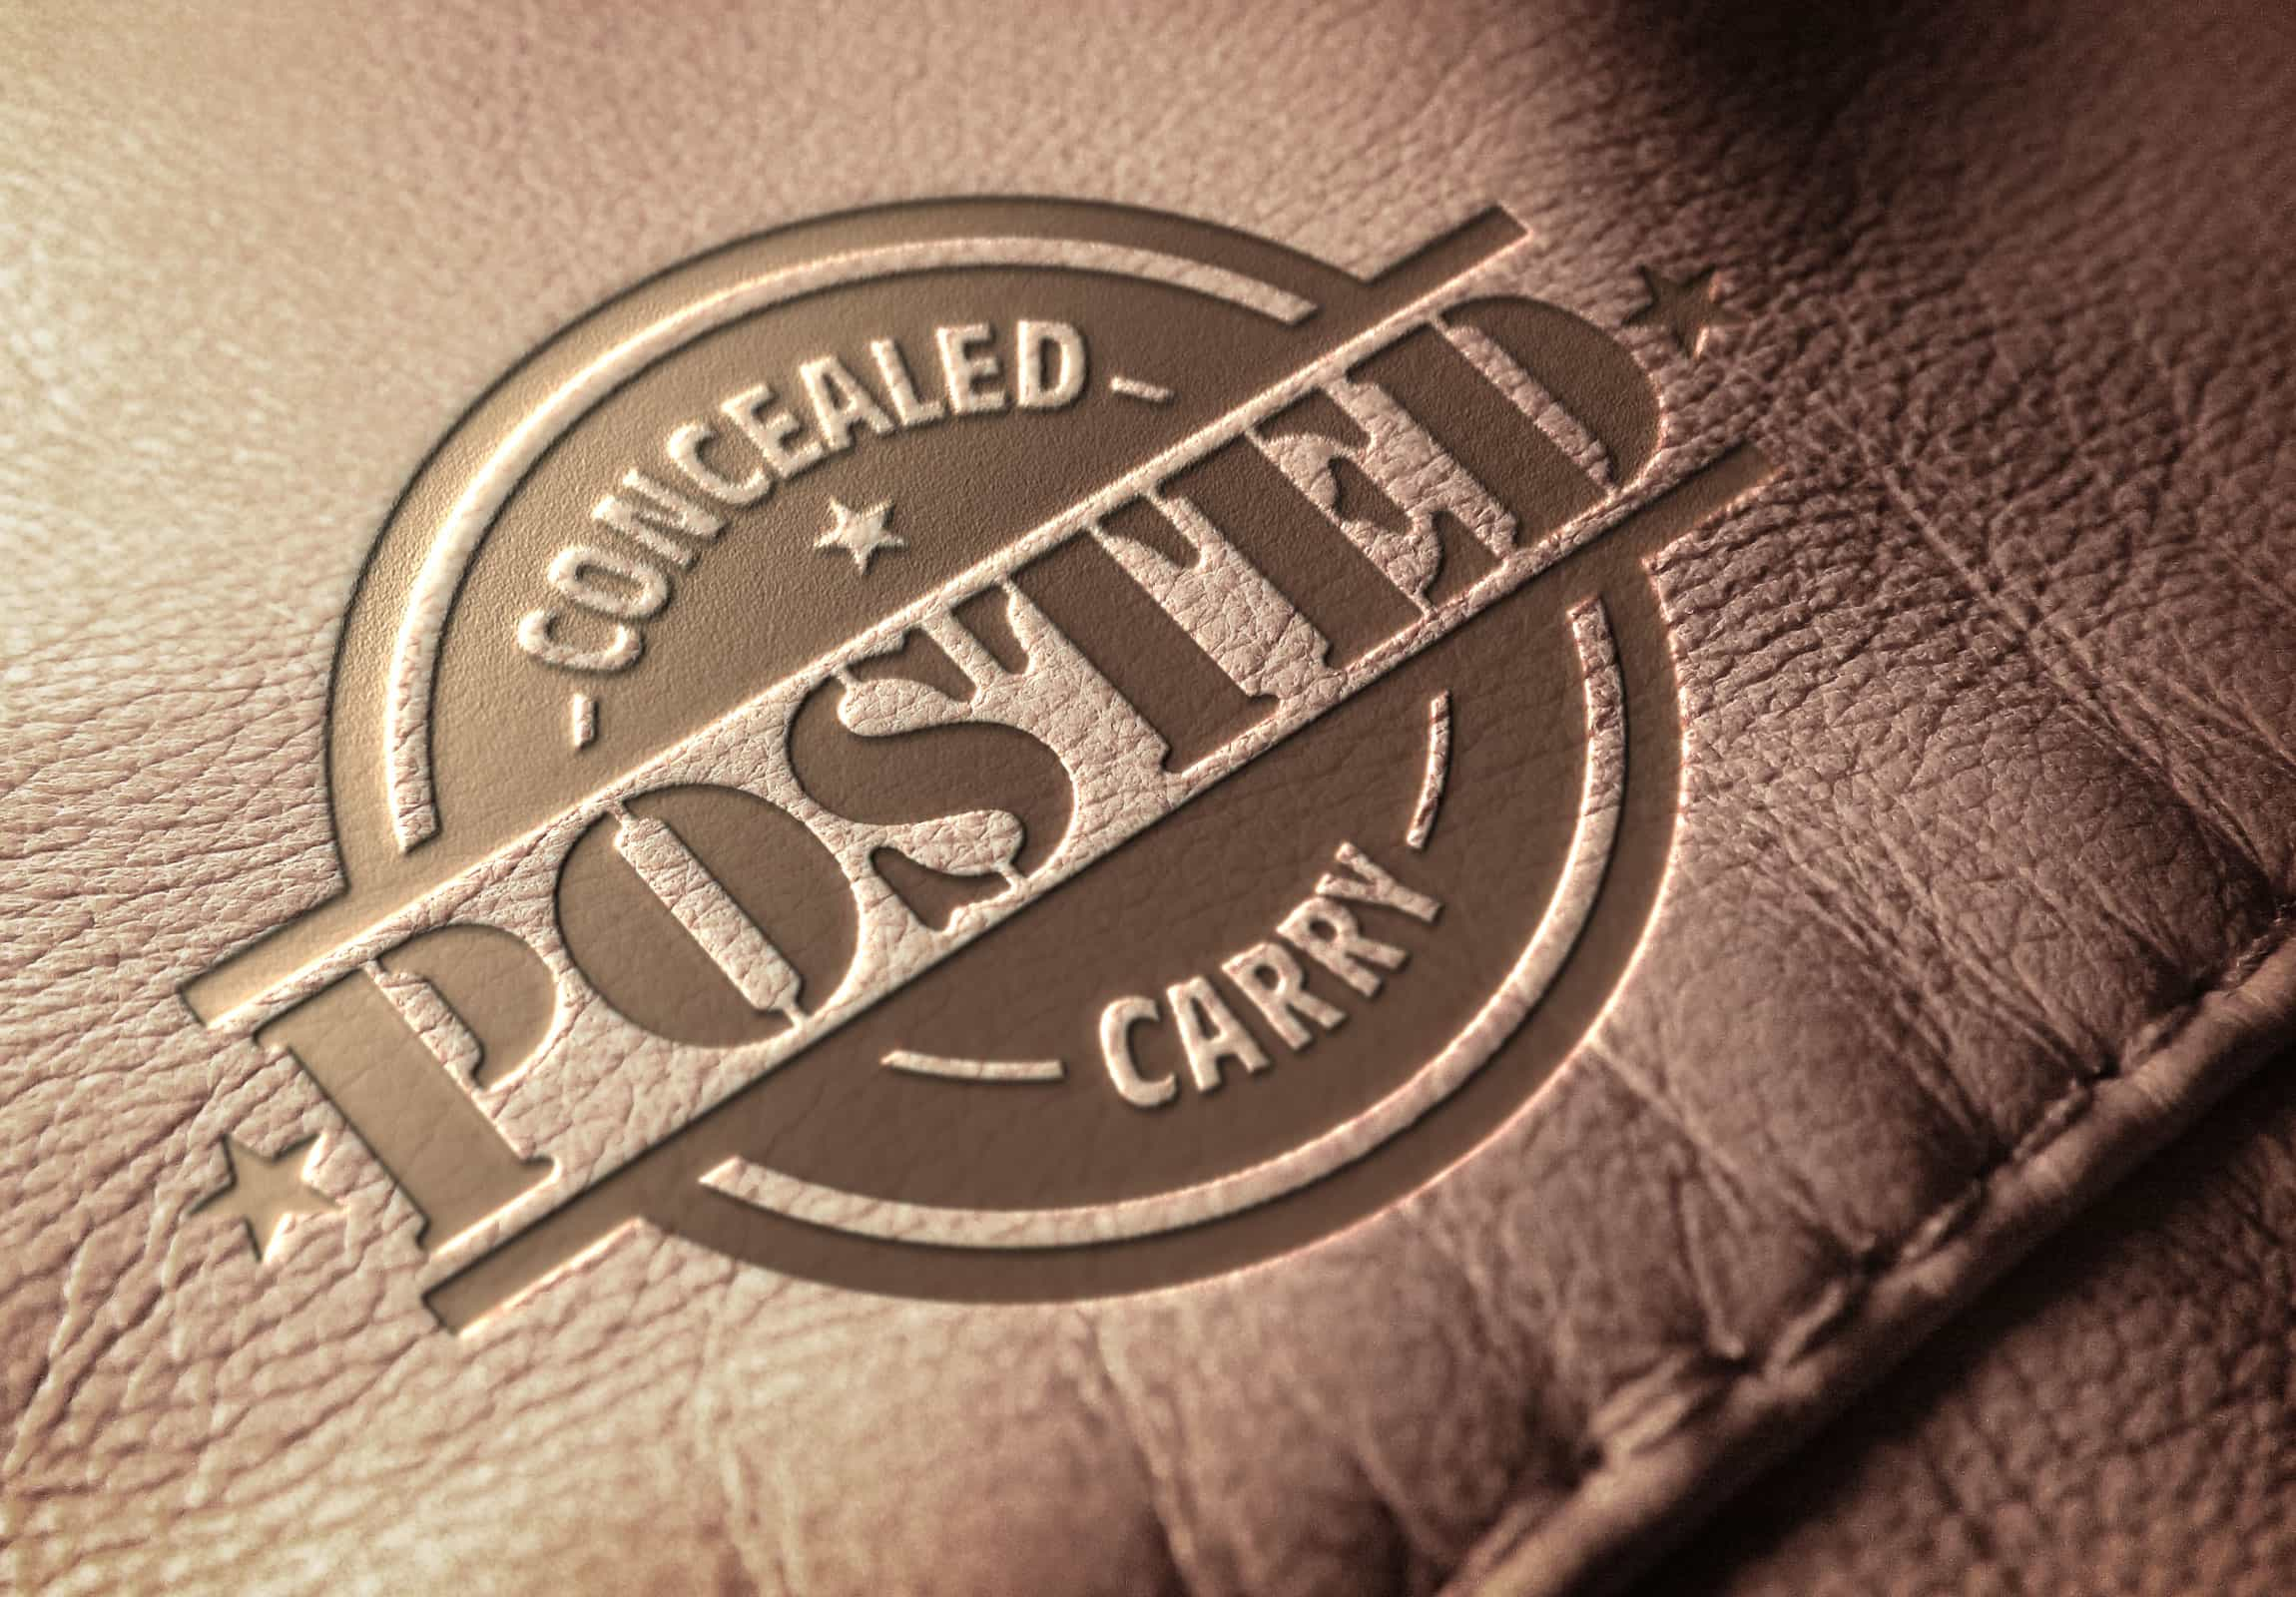 Concealed Carry Posted - Branding & Marketing